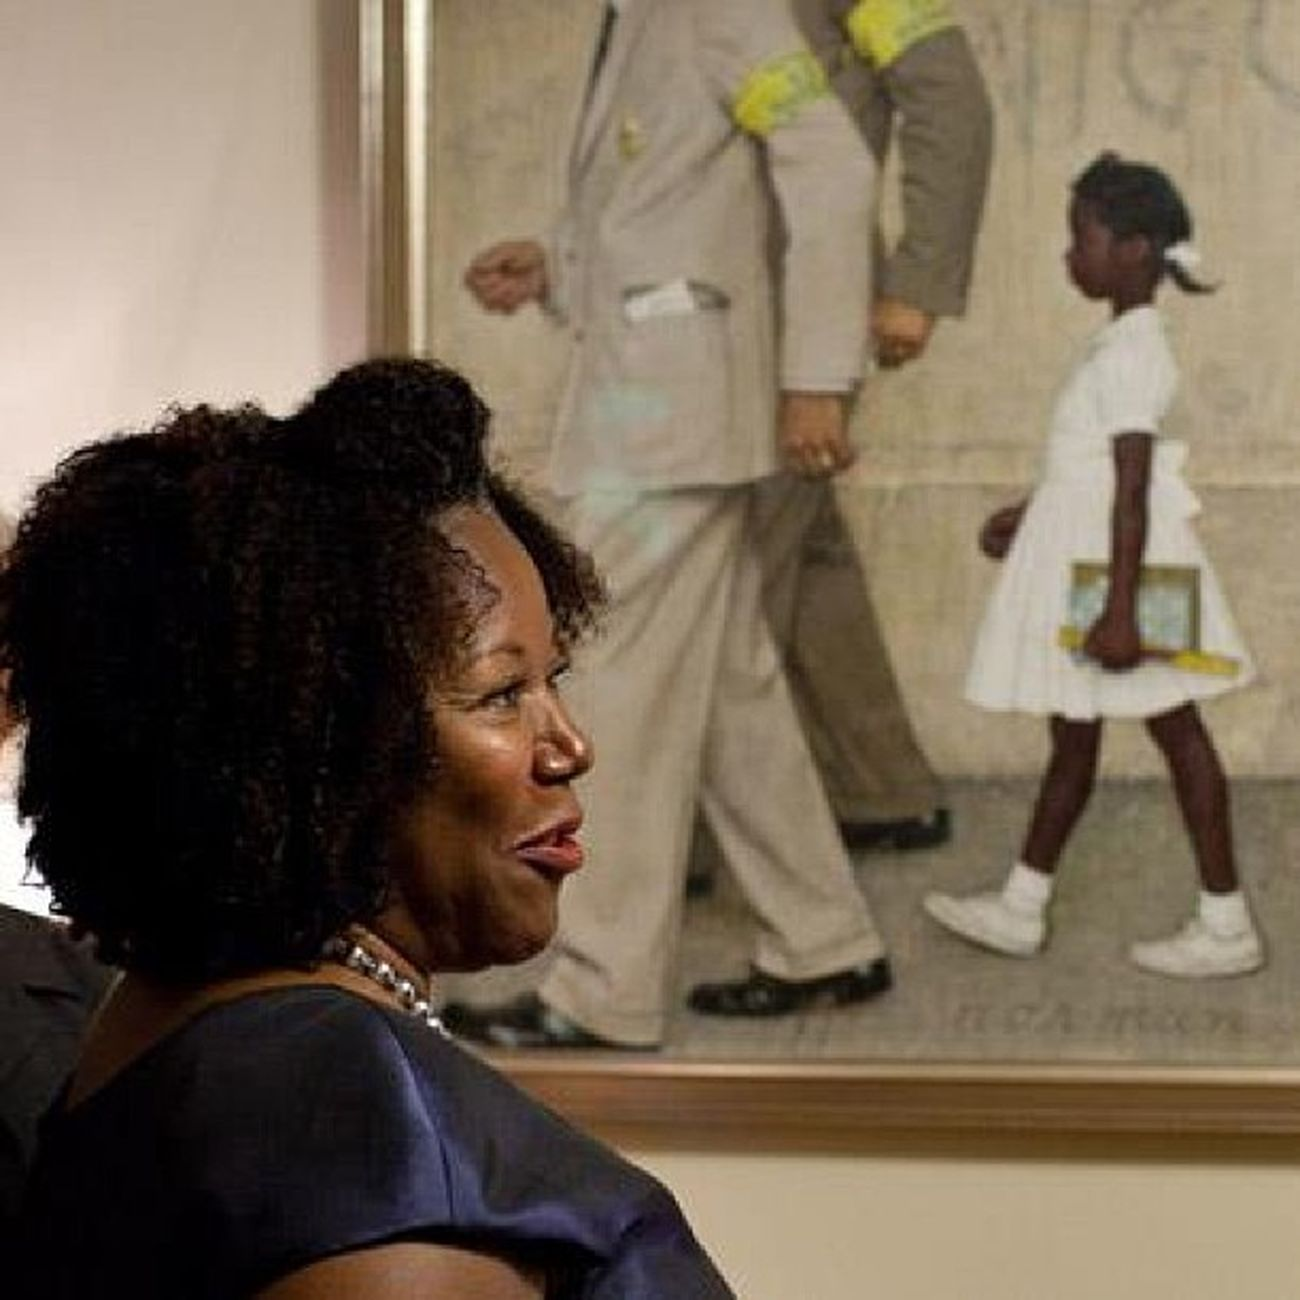 Ruby Bridges in 2011 Integration Segregation  CivilRightsMovement Blackhistorymonth AmericanHistory RubyBridges